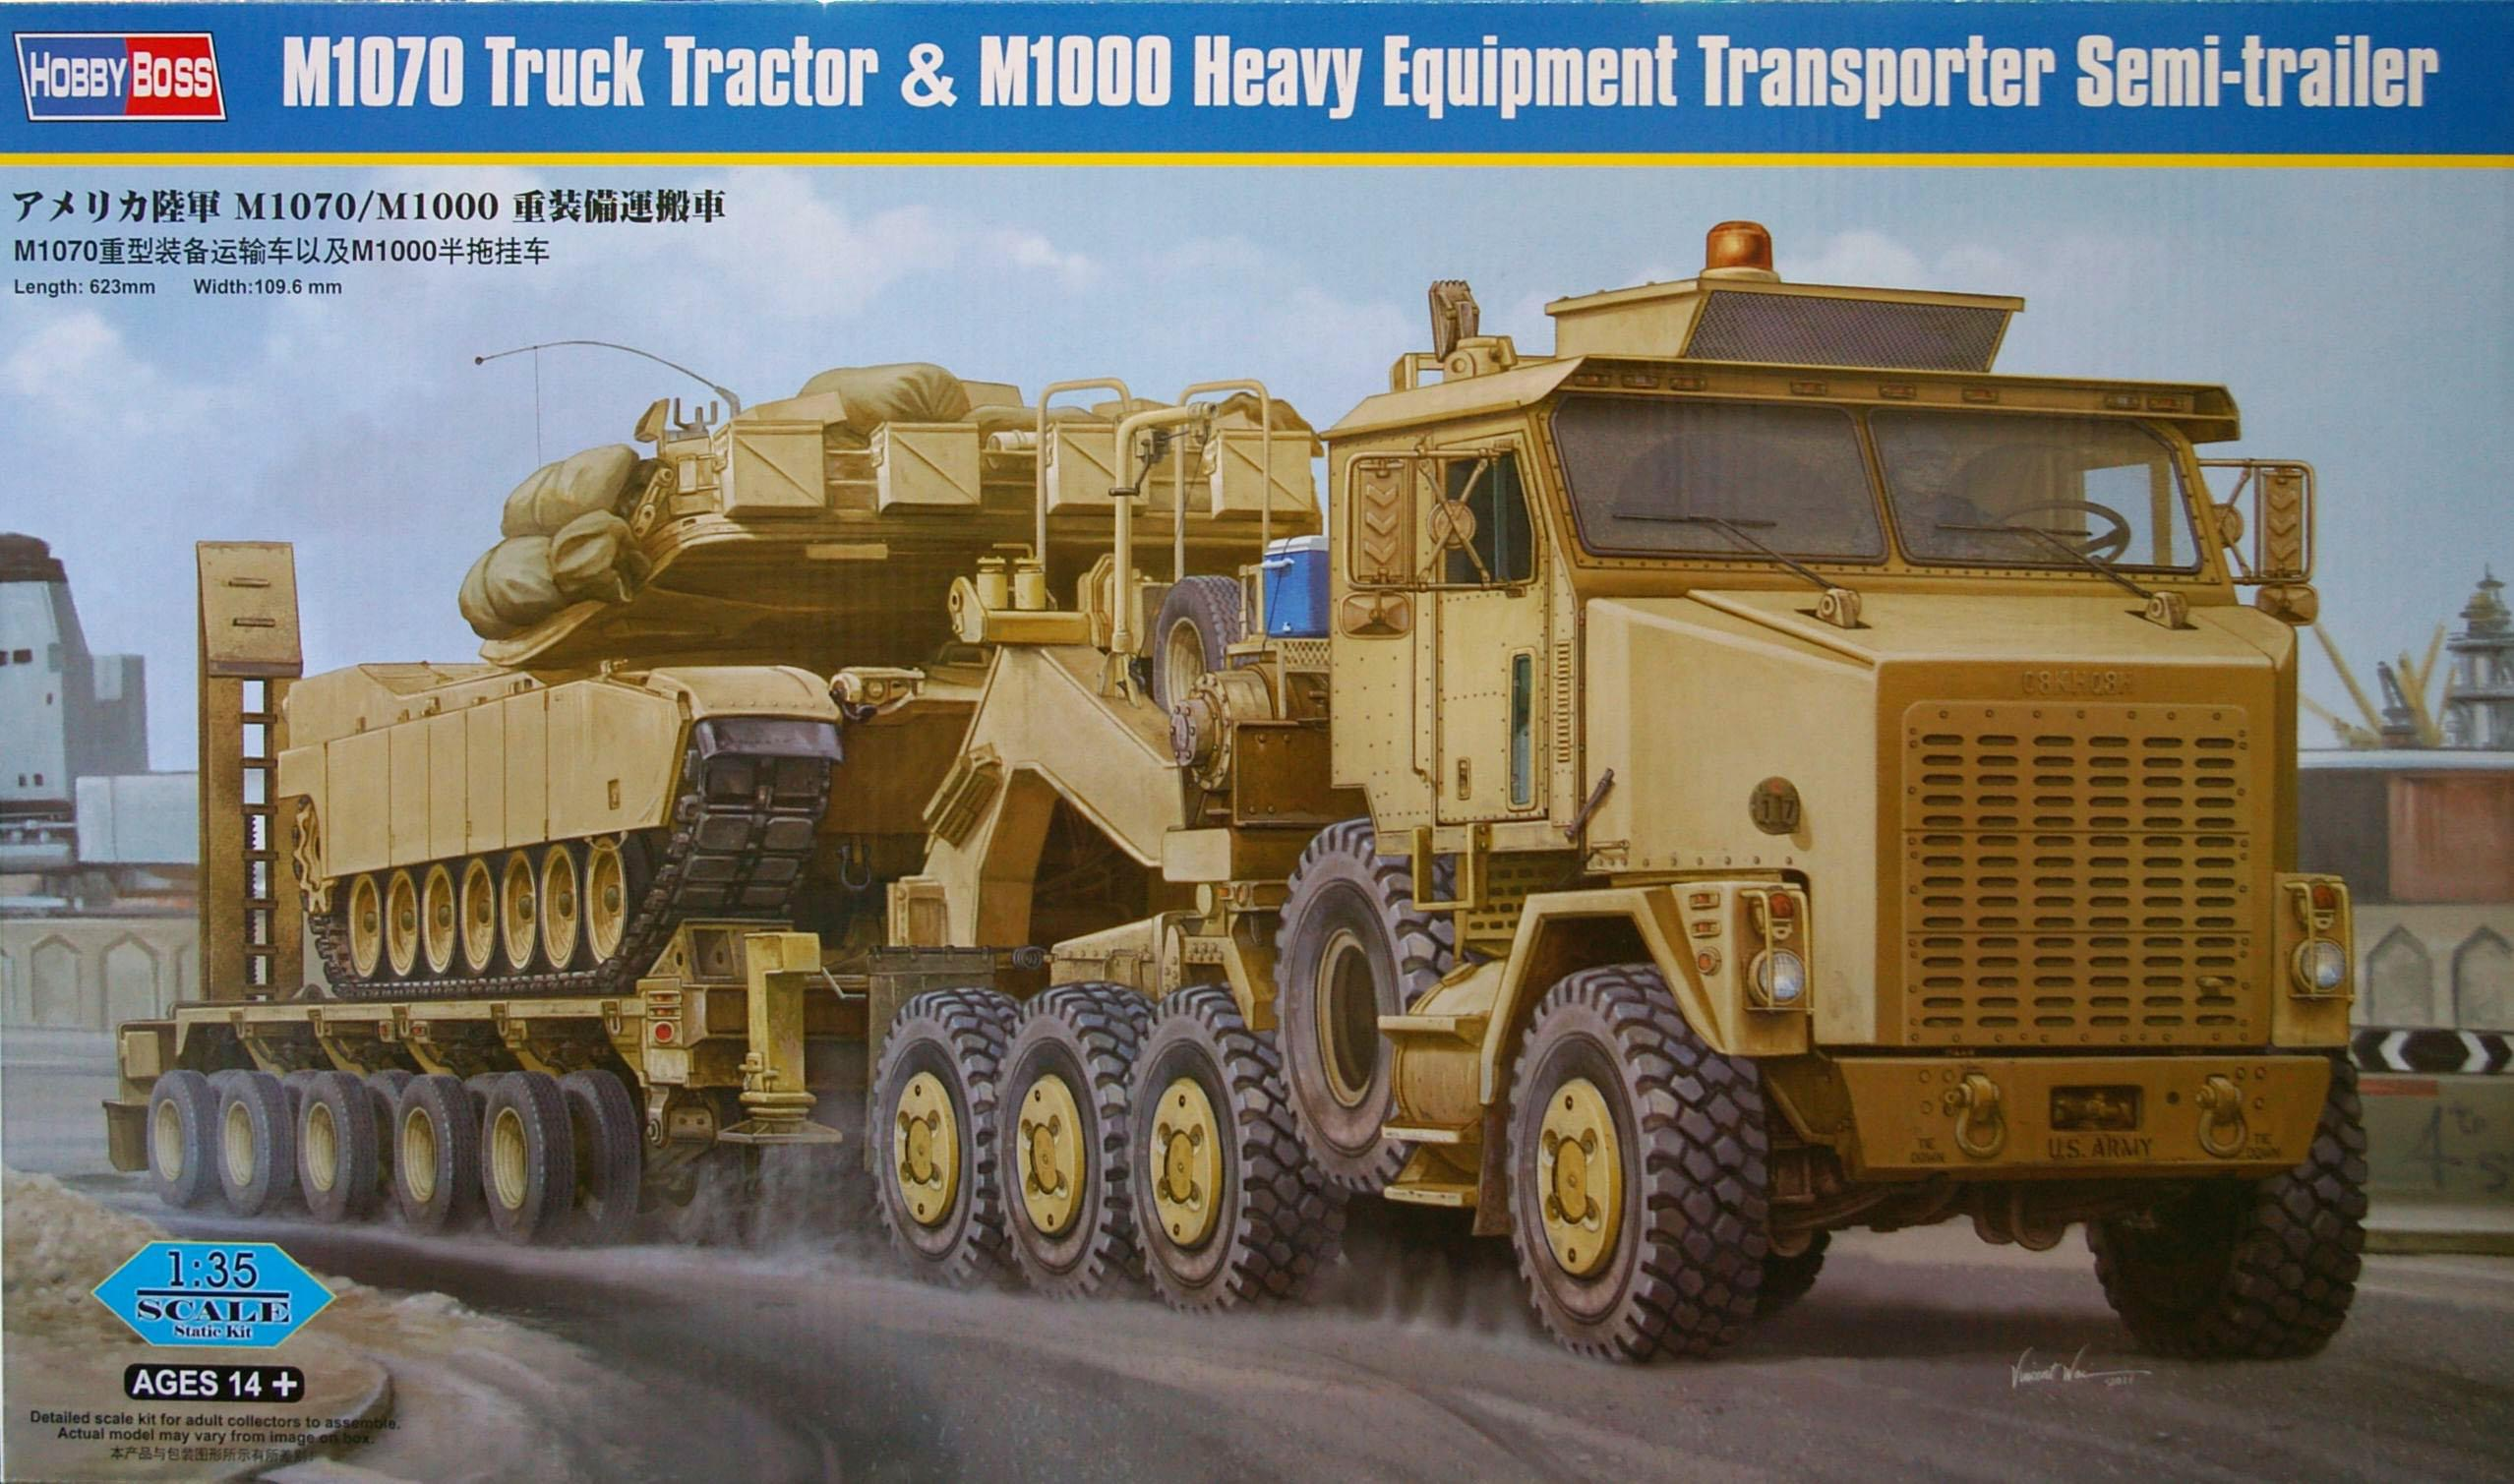 M1070 Truck Tractor & M1000 Heavy Equipment Transporter Semi-Trailer (HobbyBoss 85502)